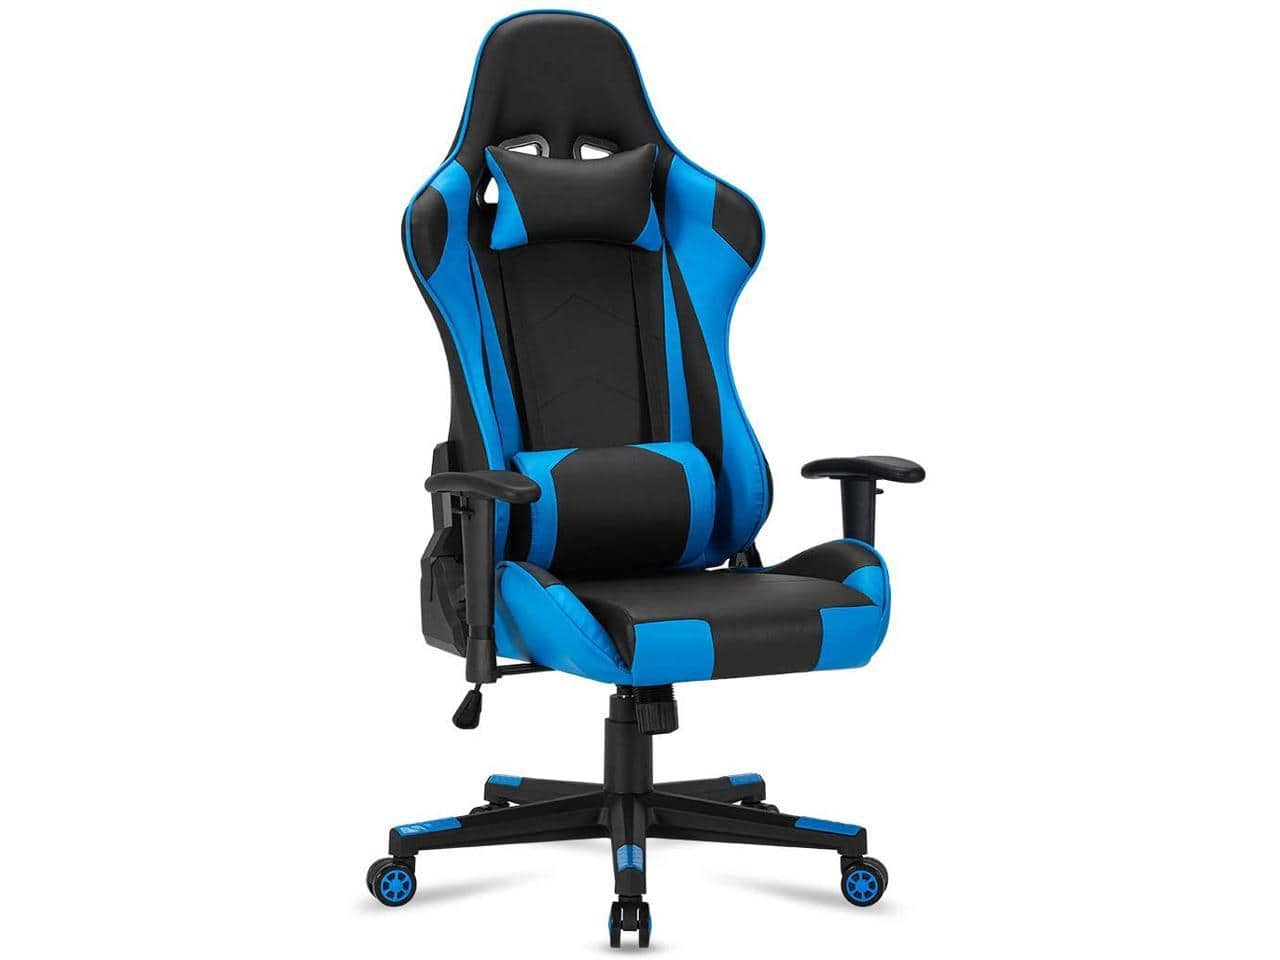 $69.99 At Newegg: Gaming Chair Computer Game Chair Office Chair Ergonomic High Back PC Desk Chair Height Adjustment Swivel Rocker